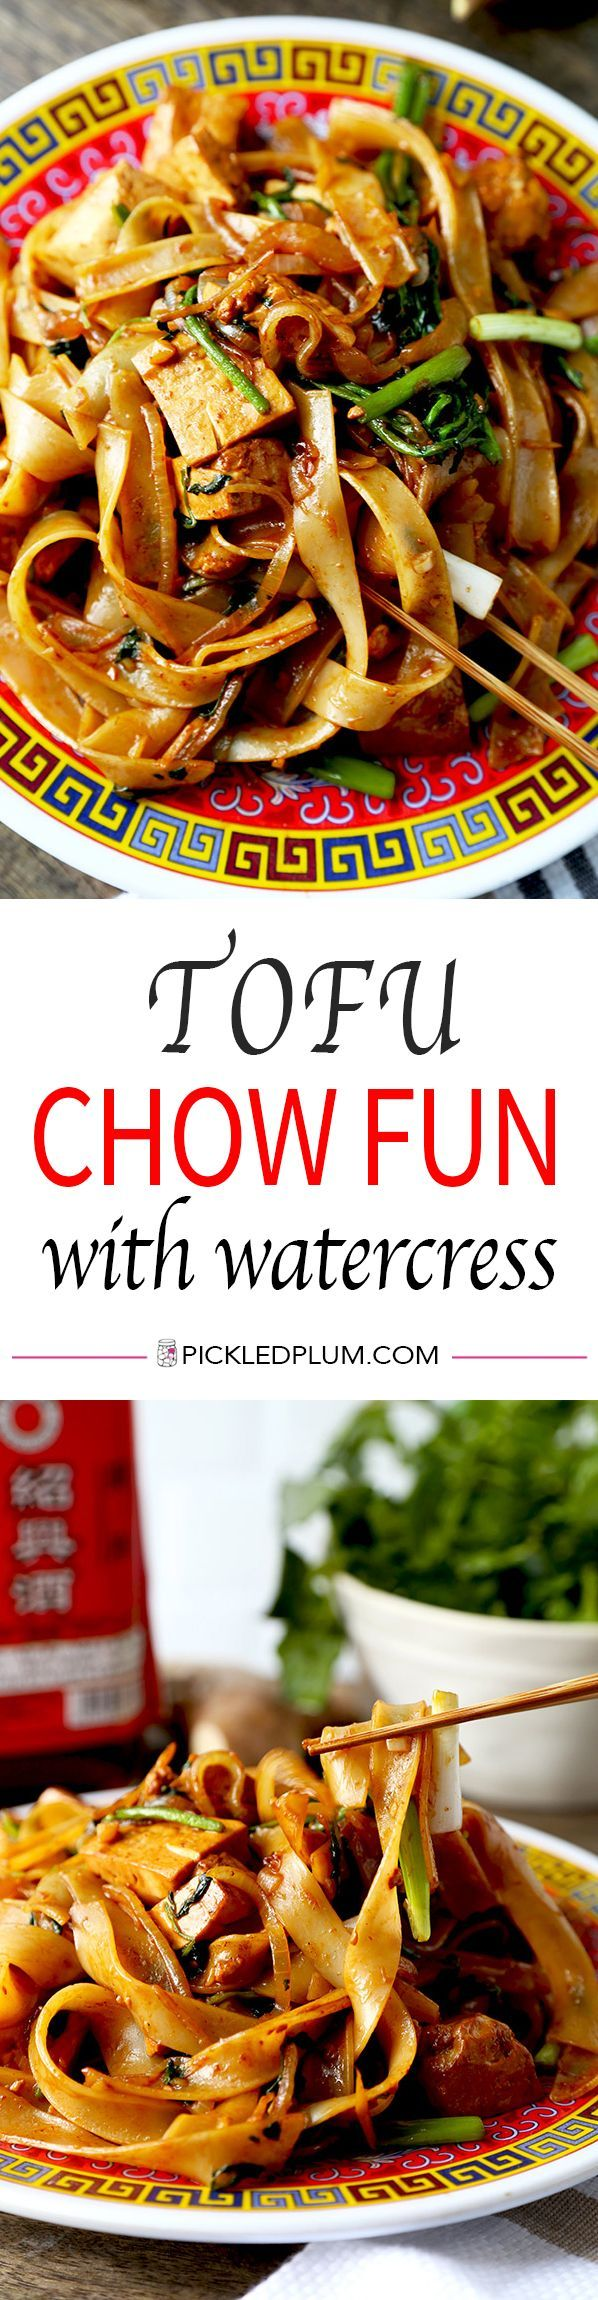 Tofu Chow Fun With Watercress - Vegetarians are going to love this recipe! There is nothing more satisfying than a big bowl of pan fried noodles coated with soy sauce and packed with umami flavors! Recipe, noodles, Chinese, vegan, vegetarian | pickledplum.com